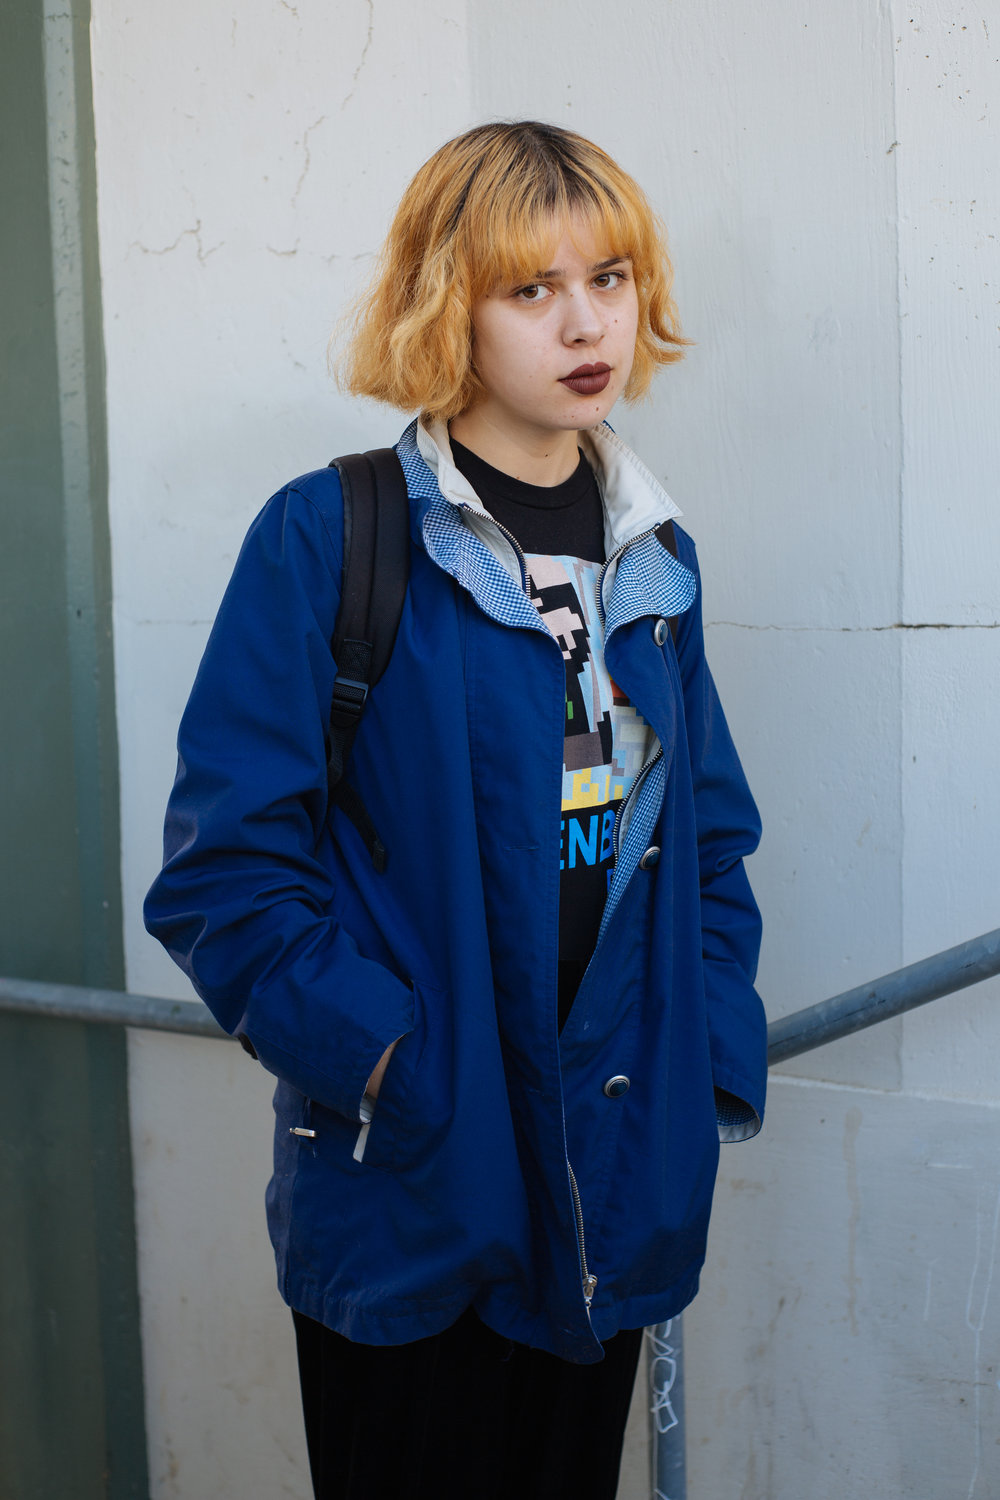 Student on college campus, East Los Angeles, California 2016